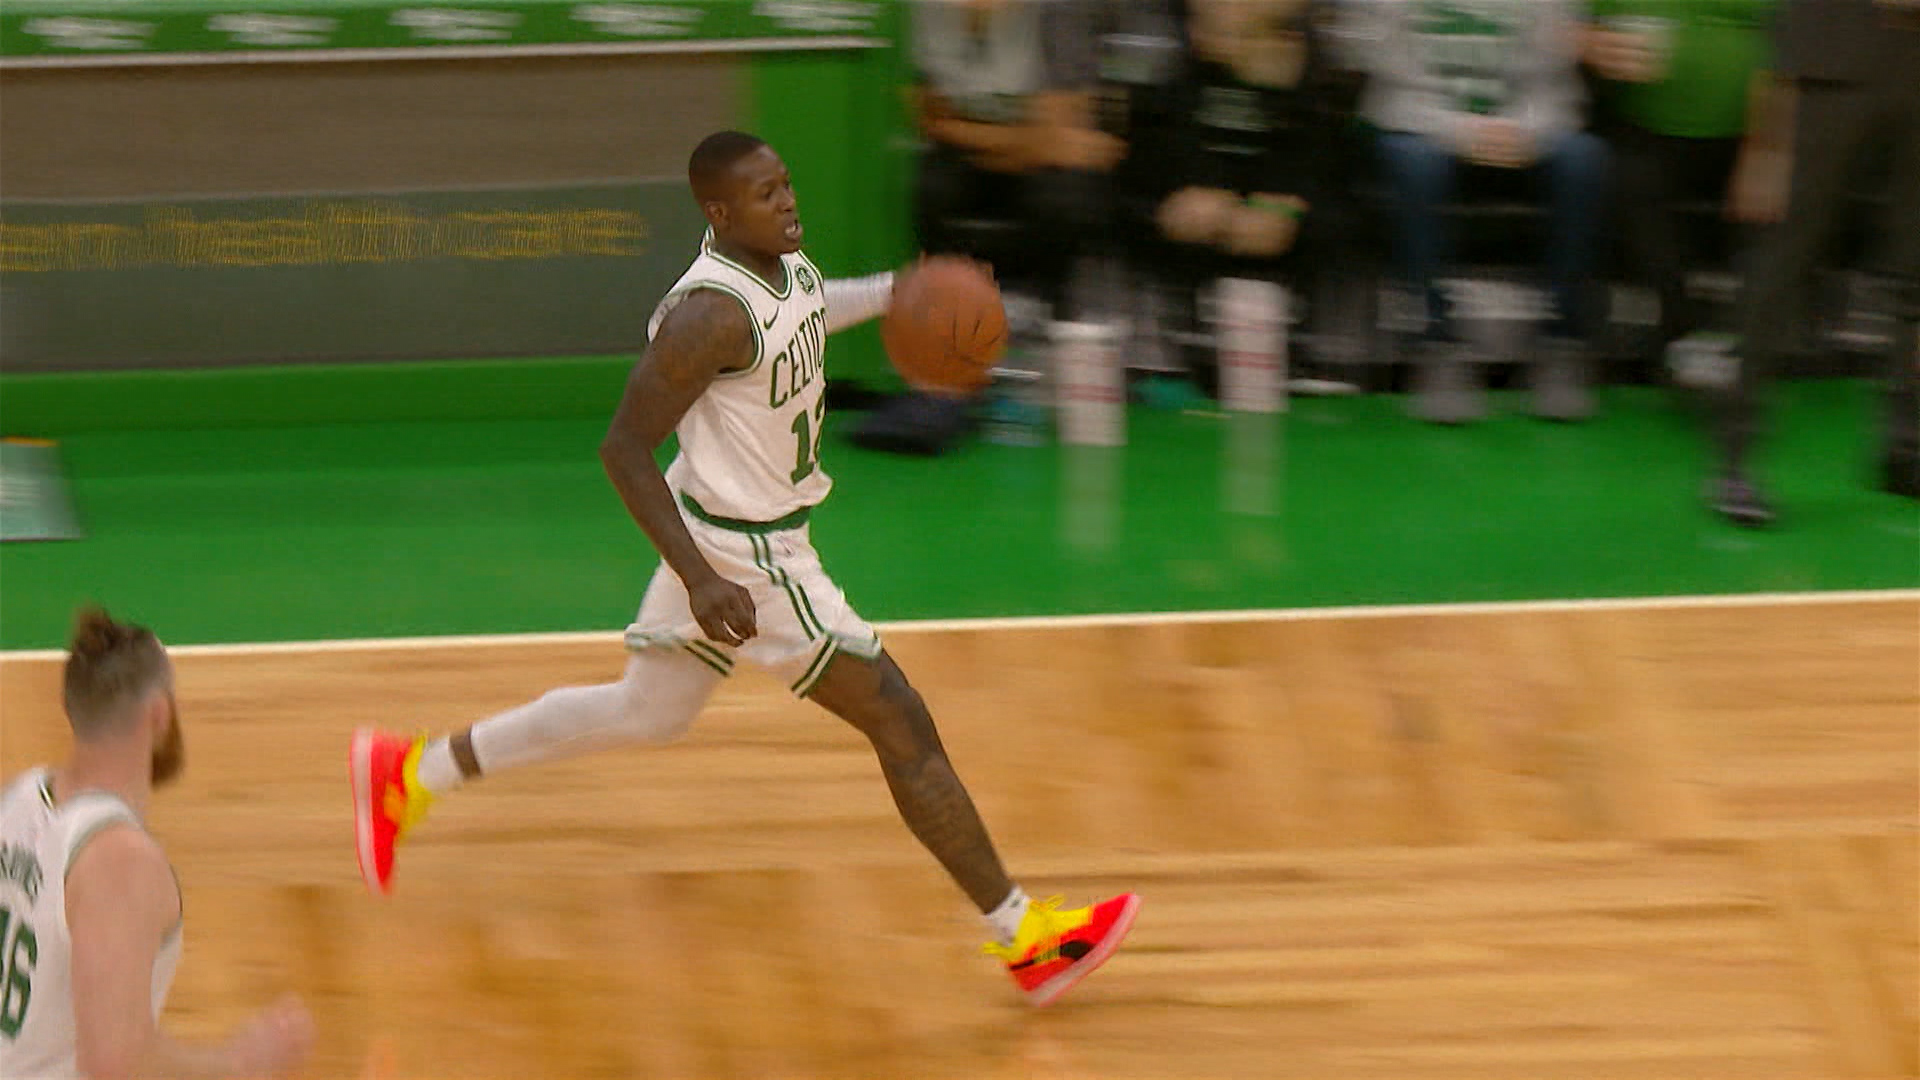 Danny Ainge wants a piece of Terry